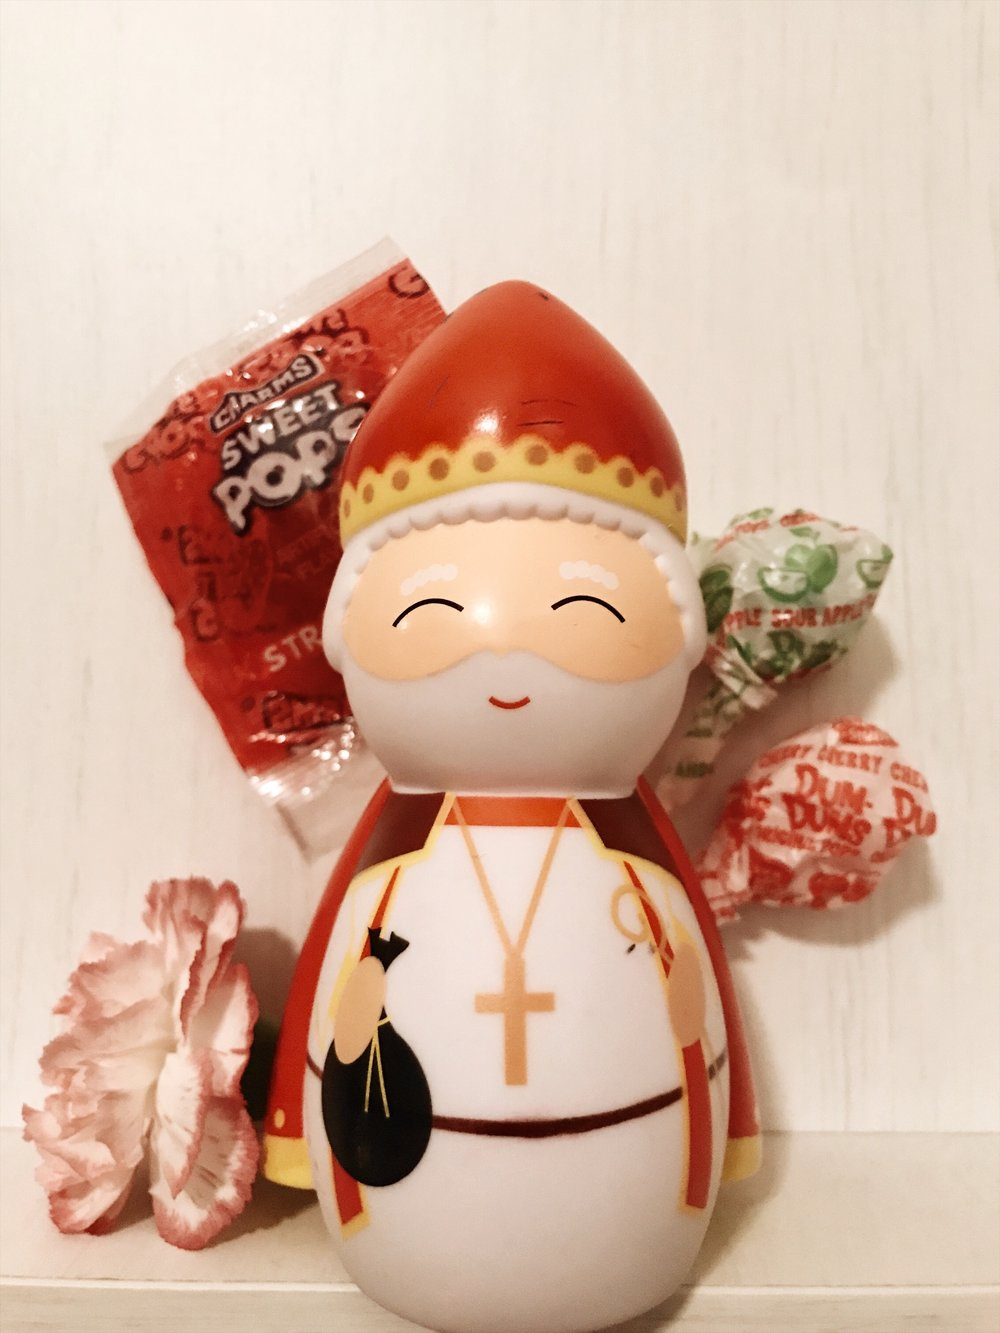 Saint Nicholas Shining Light doll's about to be dropped into a cute little toddler shoe with some lollipops.